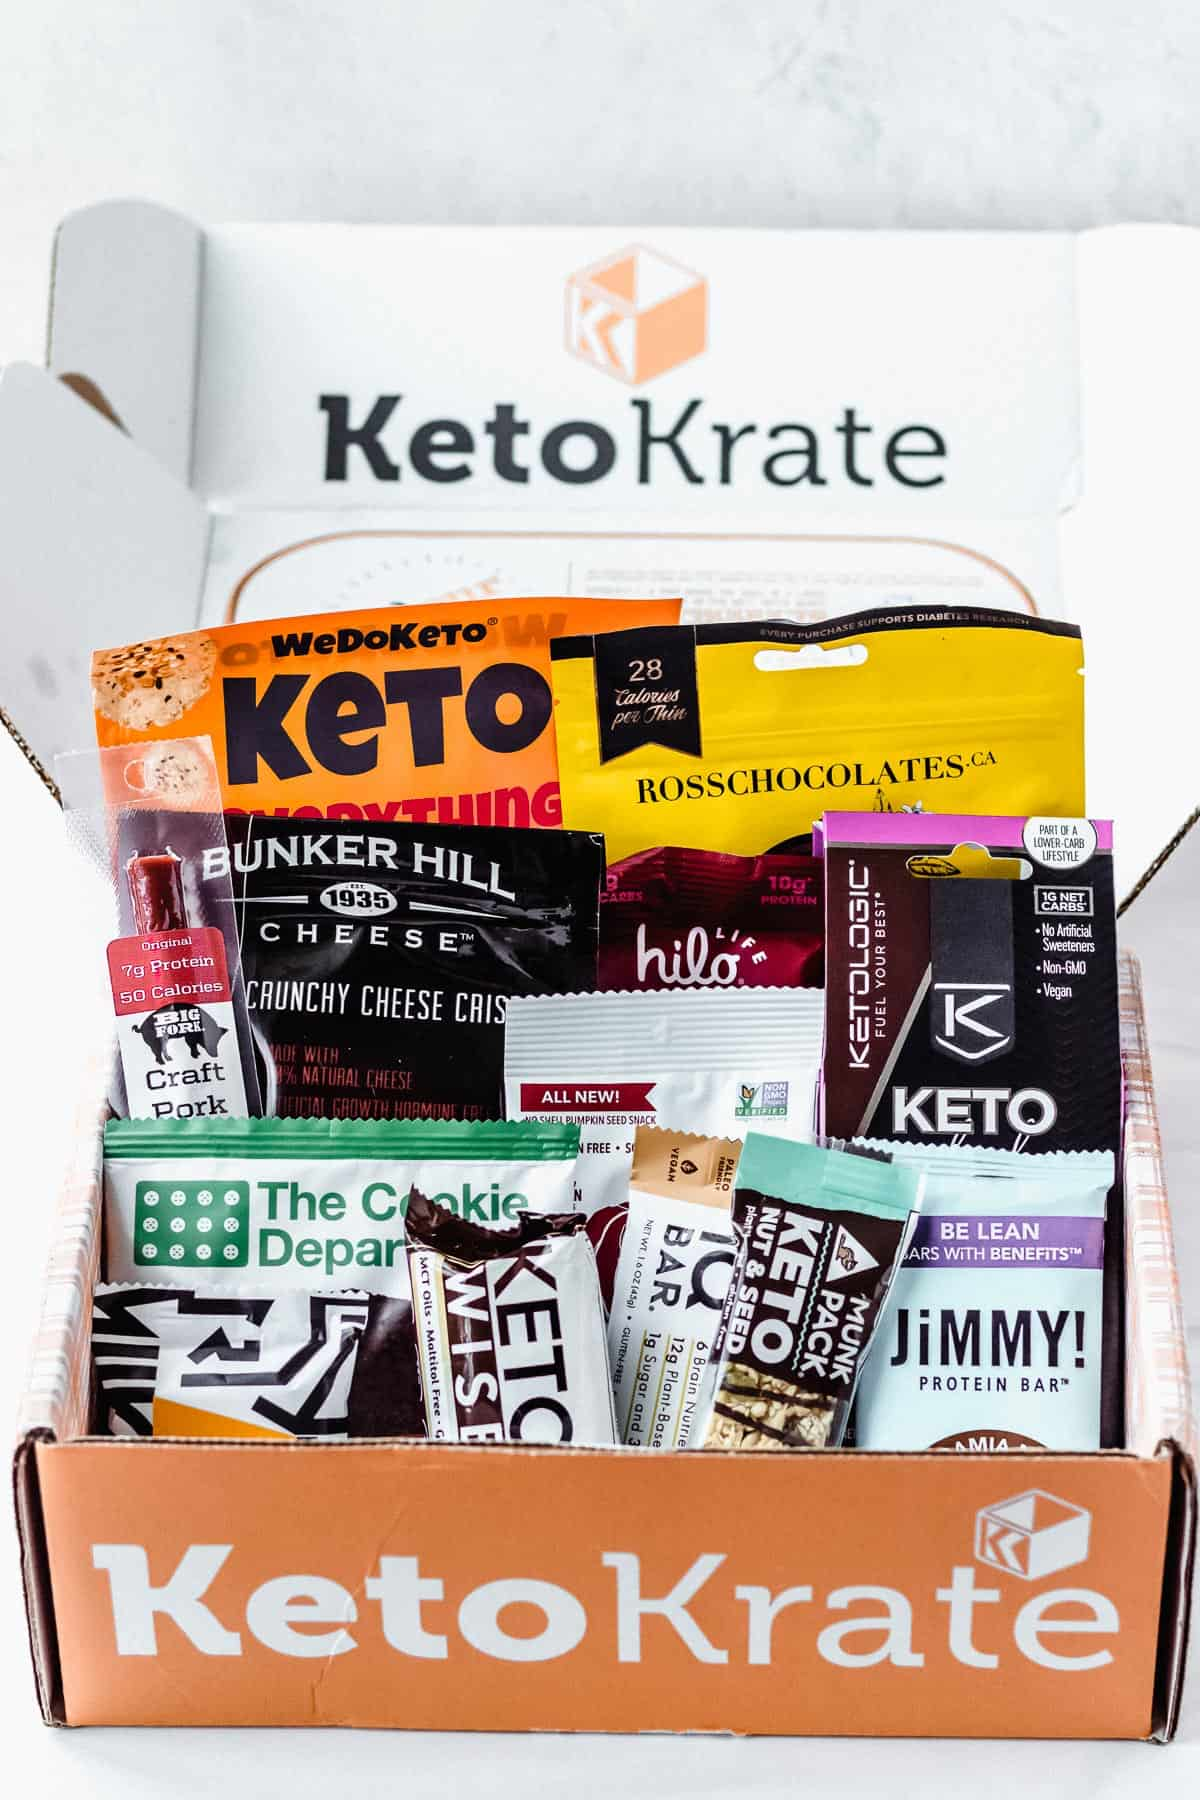 March 2021 Keto Krate box with all of the snacks included displayed inside